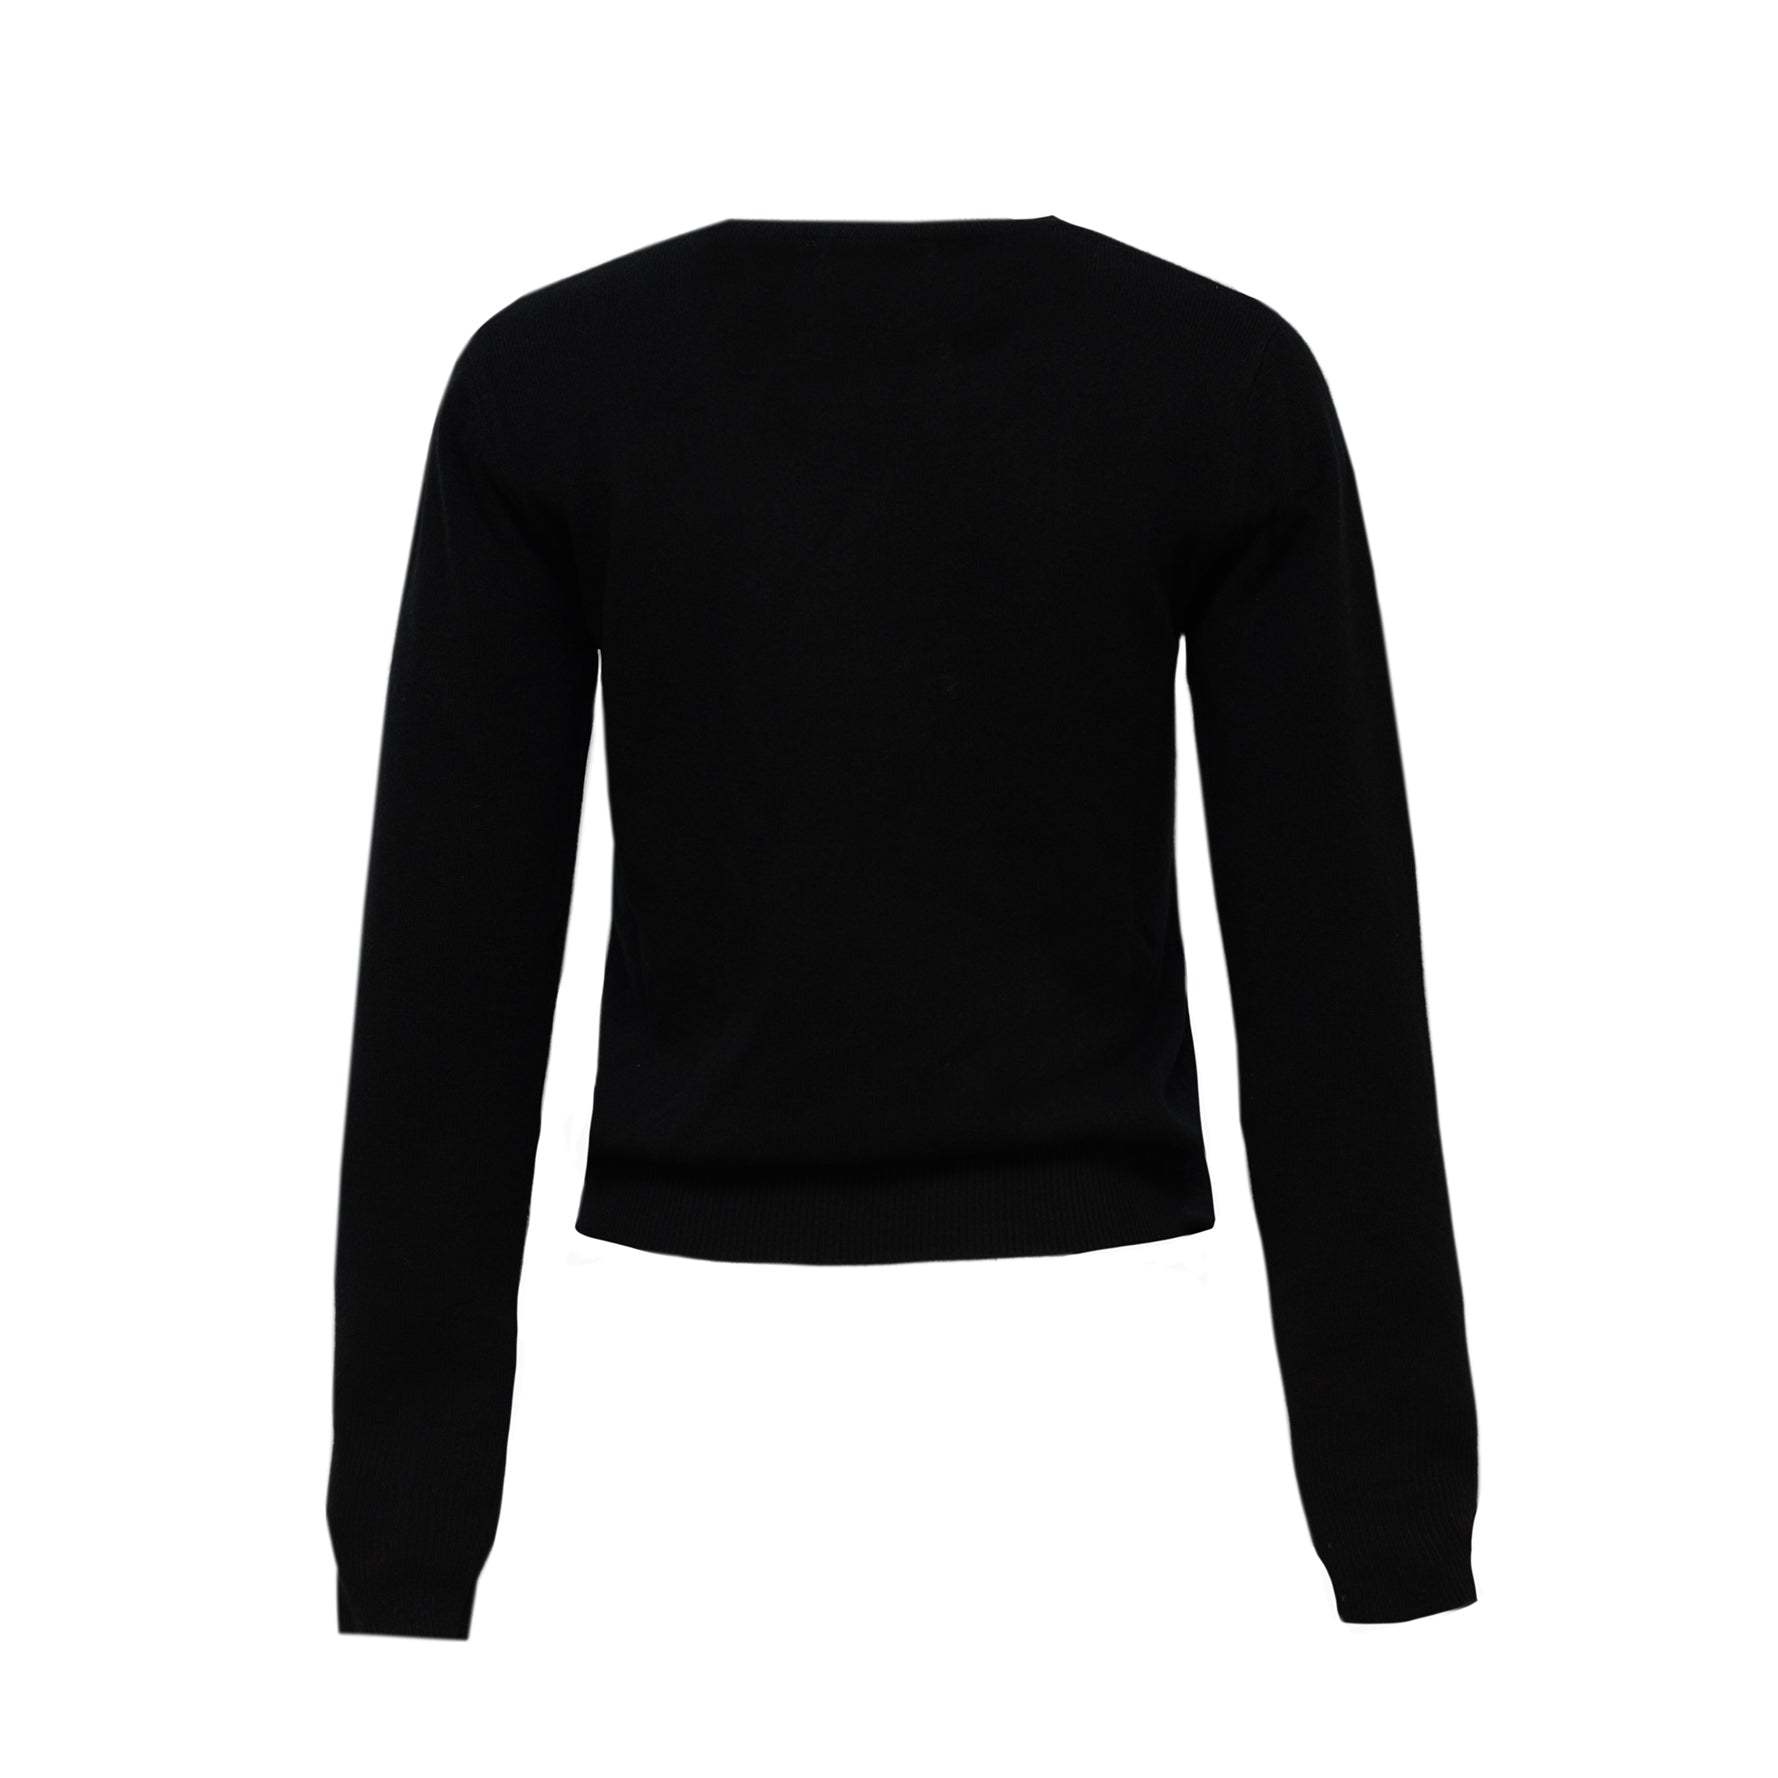 The Lane Cashmere sweater in Black